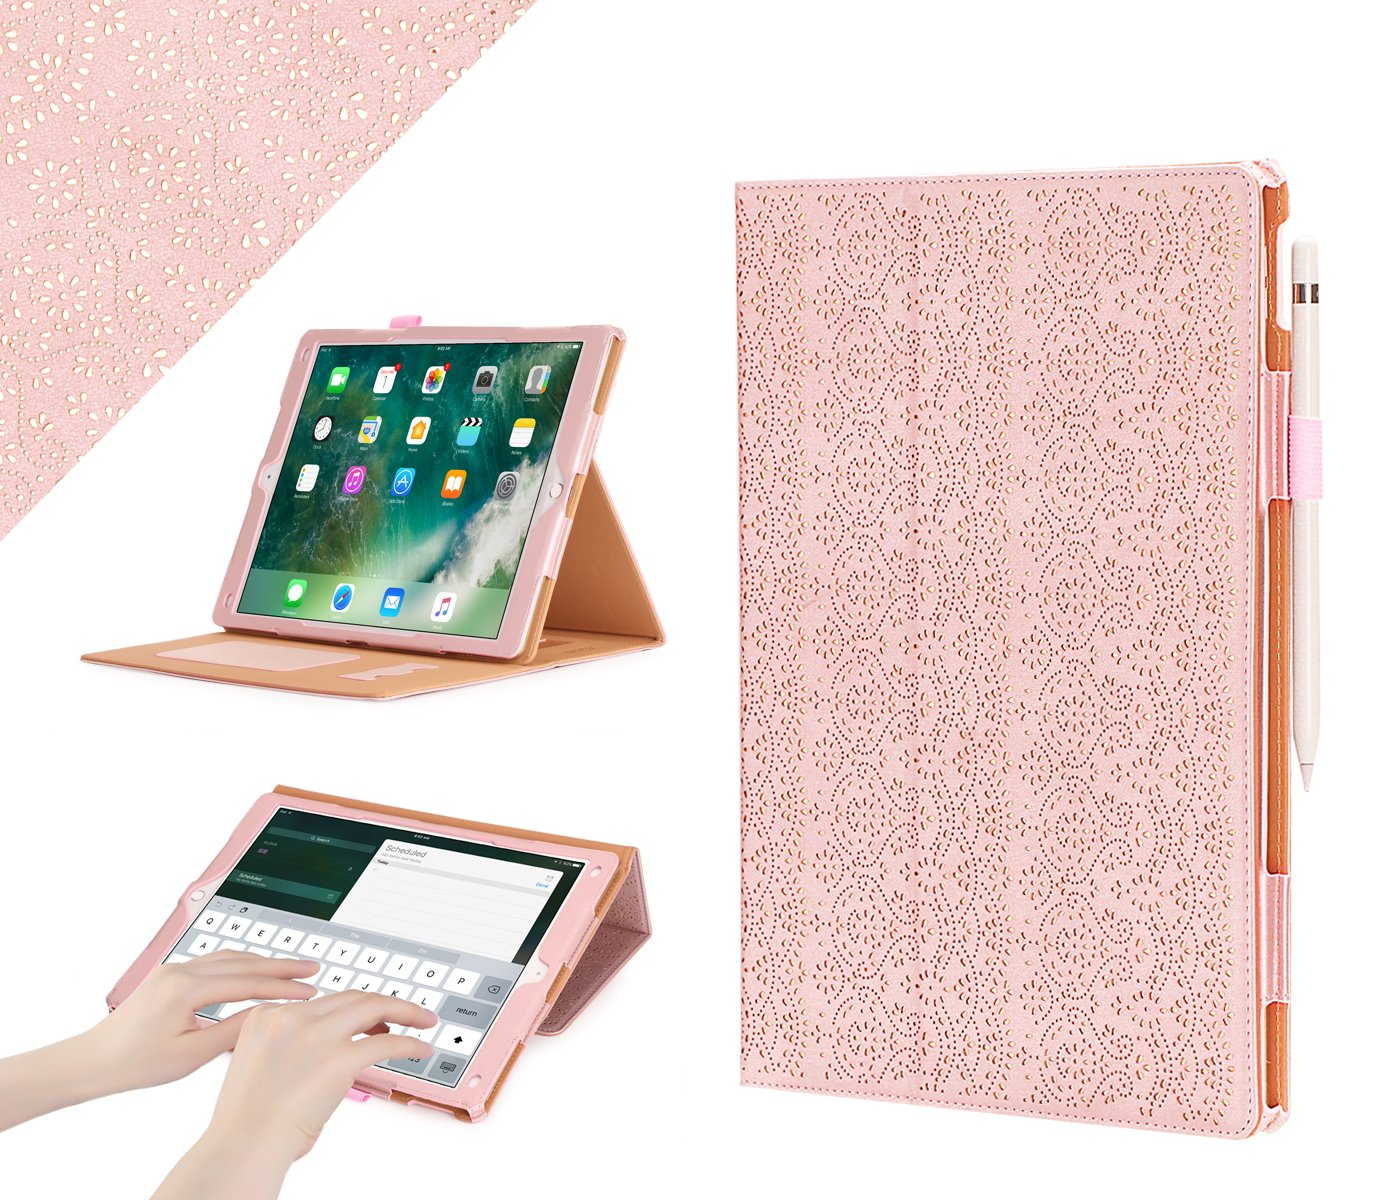 iPad Pro 12.9 (Compatible with 2017 and 2015 Model) Case, WWW [Luxury Laser Flower] Premium PU Leather Case Protective Cover with Auto Wake/Sleep Feature for iPad Pro 12.9 (Both 2017 and 2015) Pink